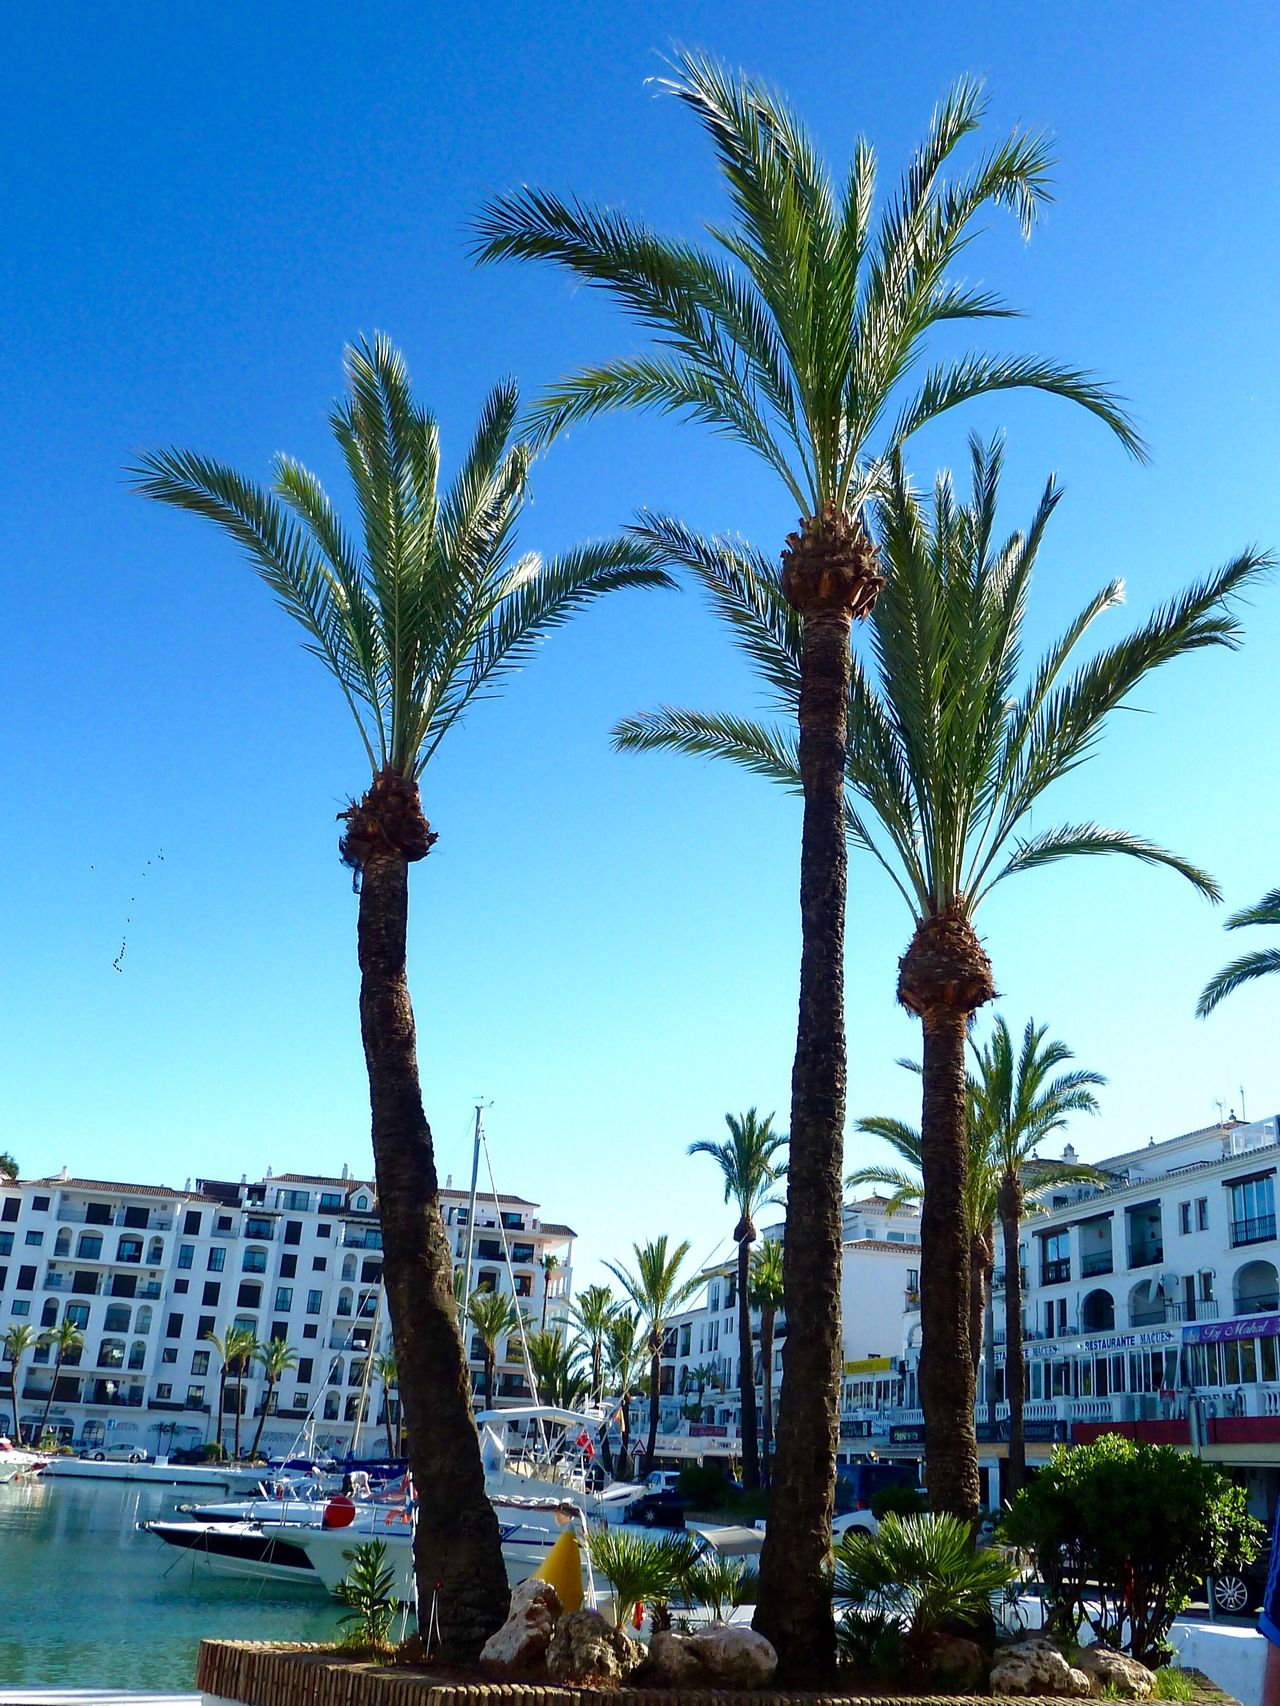 Duquesa SPAIN Palm Trees Marina Boats Blue Sky